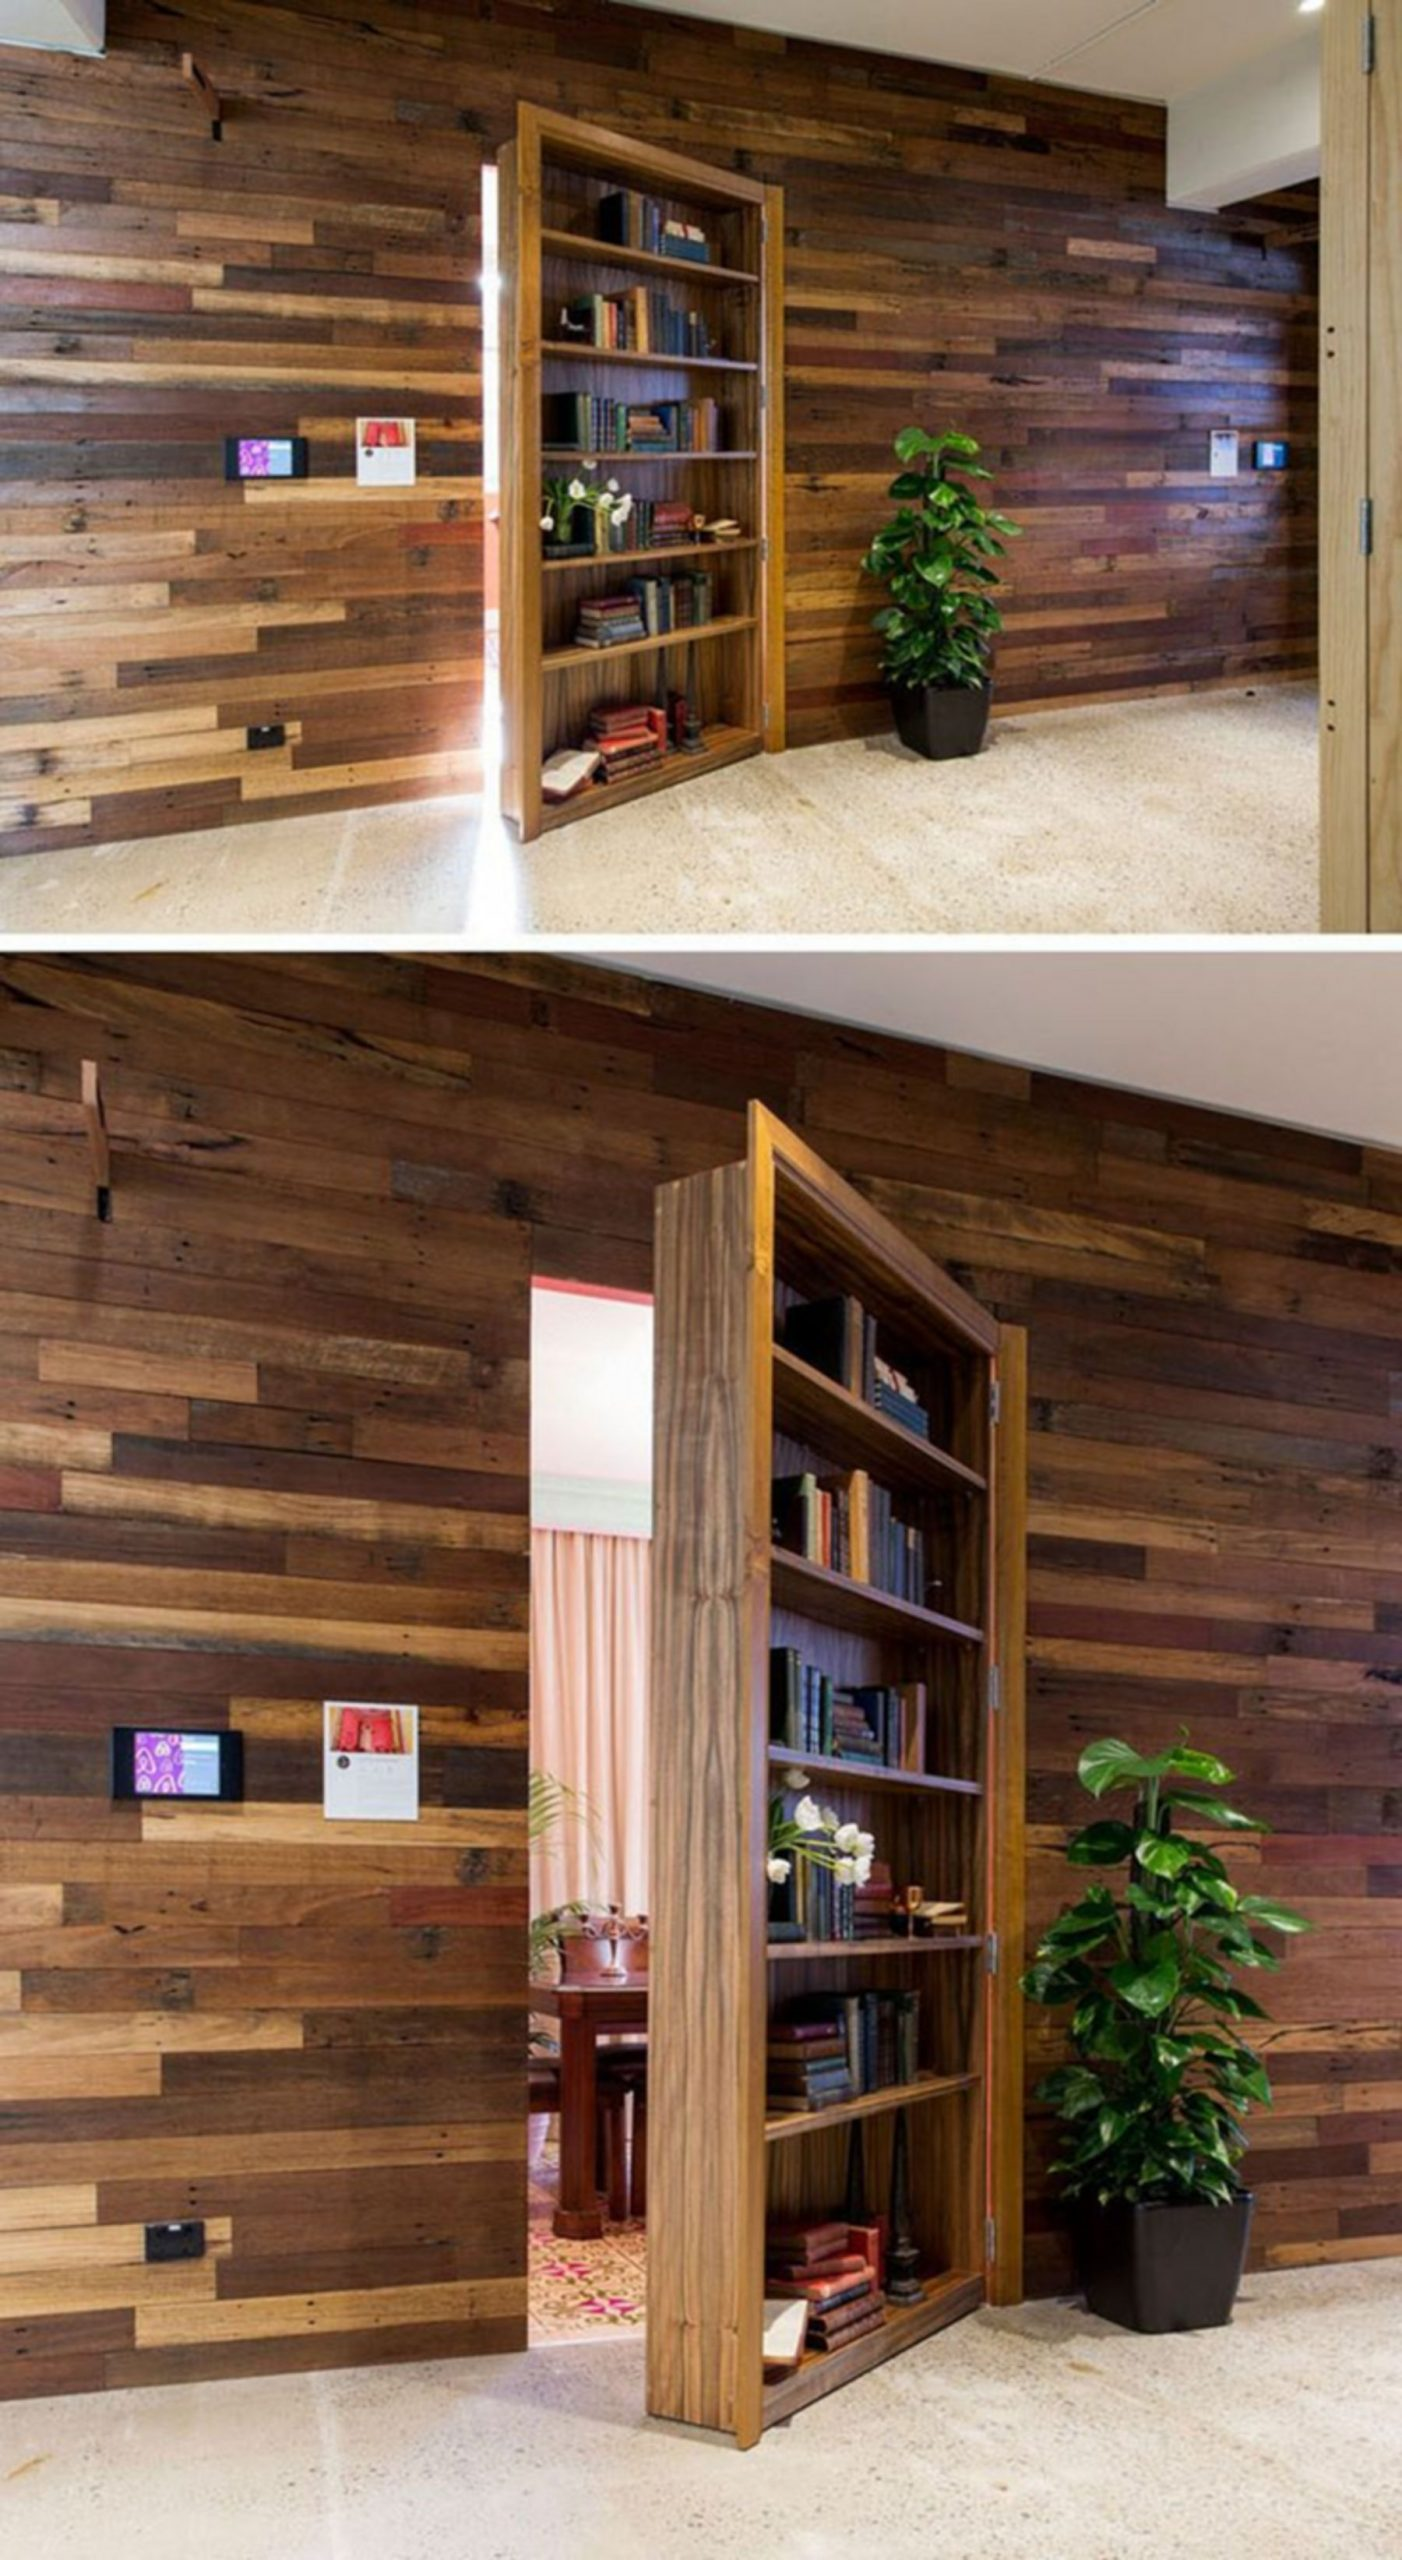 14 Interesting Secret Room Design Ideas With Hidden Doors – MOOLTON